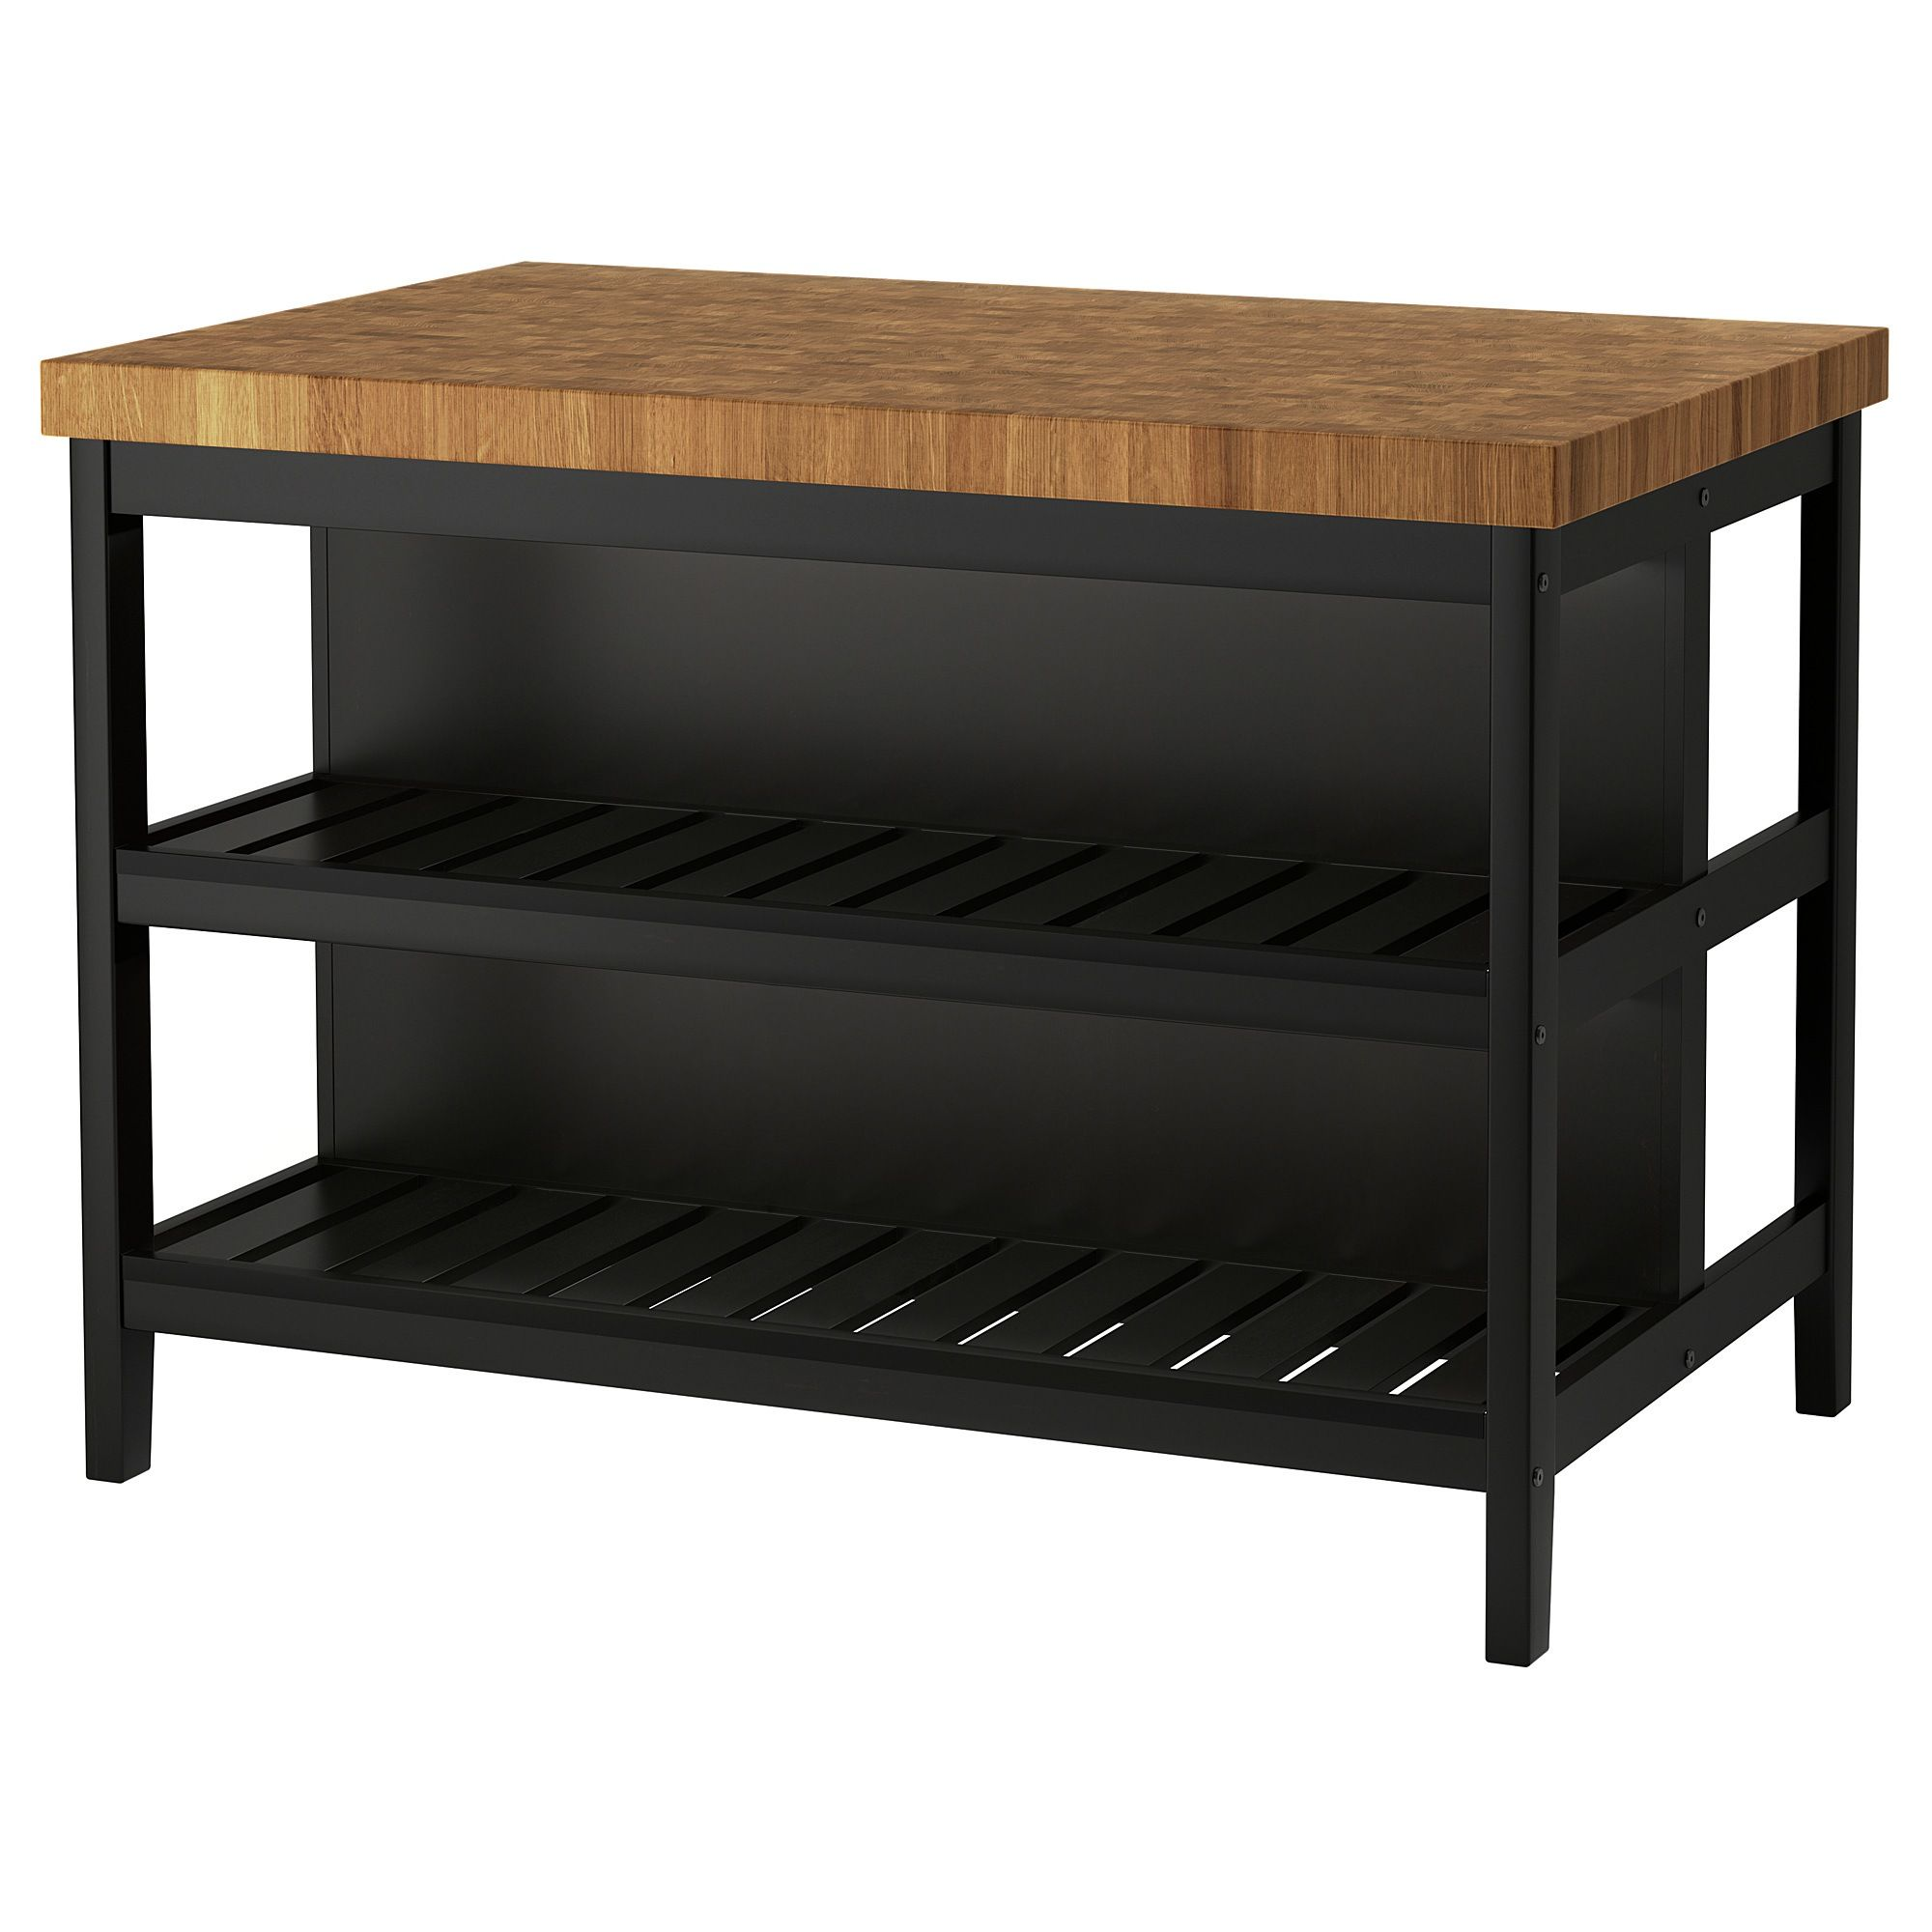 Ikea Vadholma Kitchen Island Black Oak